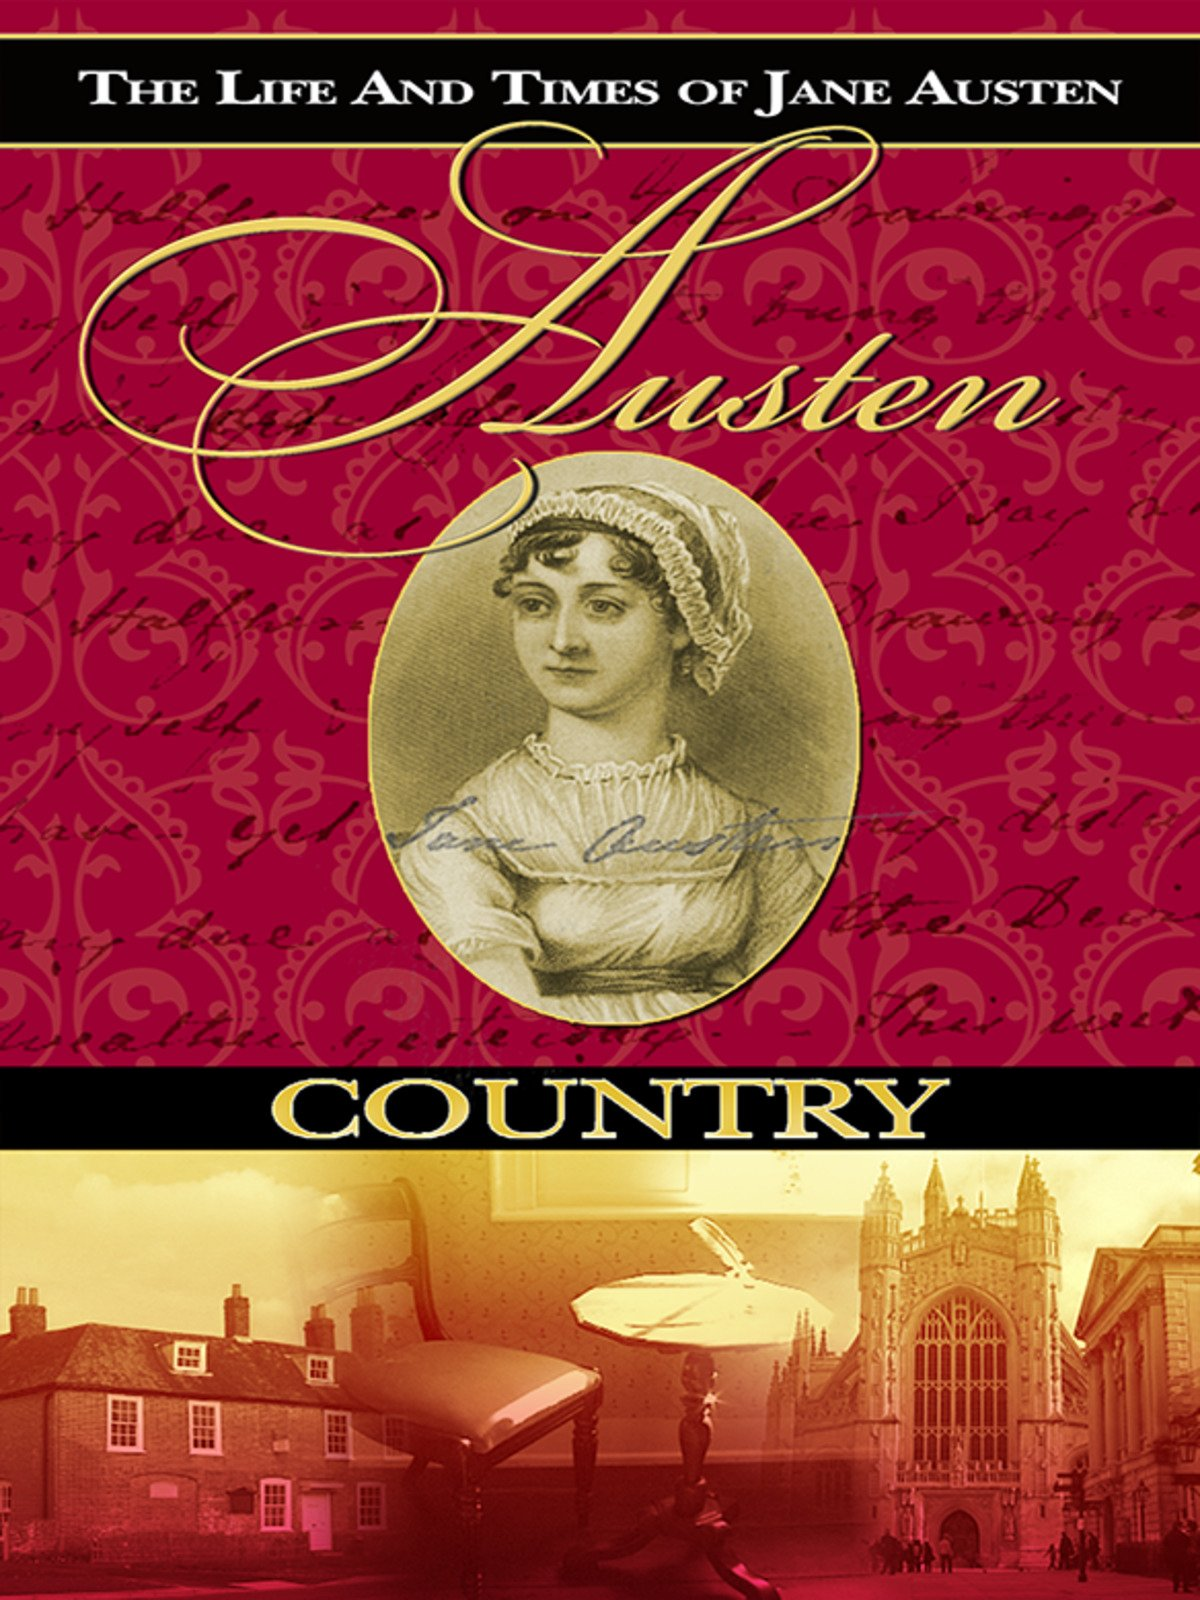 Jane Austen Country: The Life & Times of Jane Austen on Amazon Prime Video UK